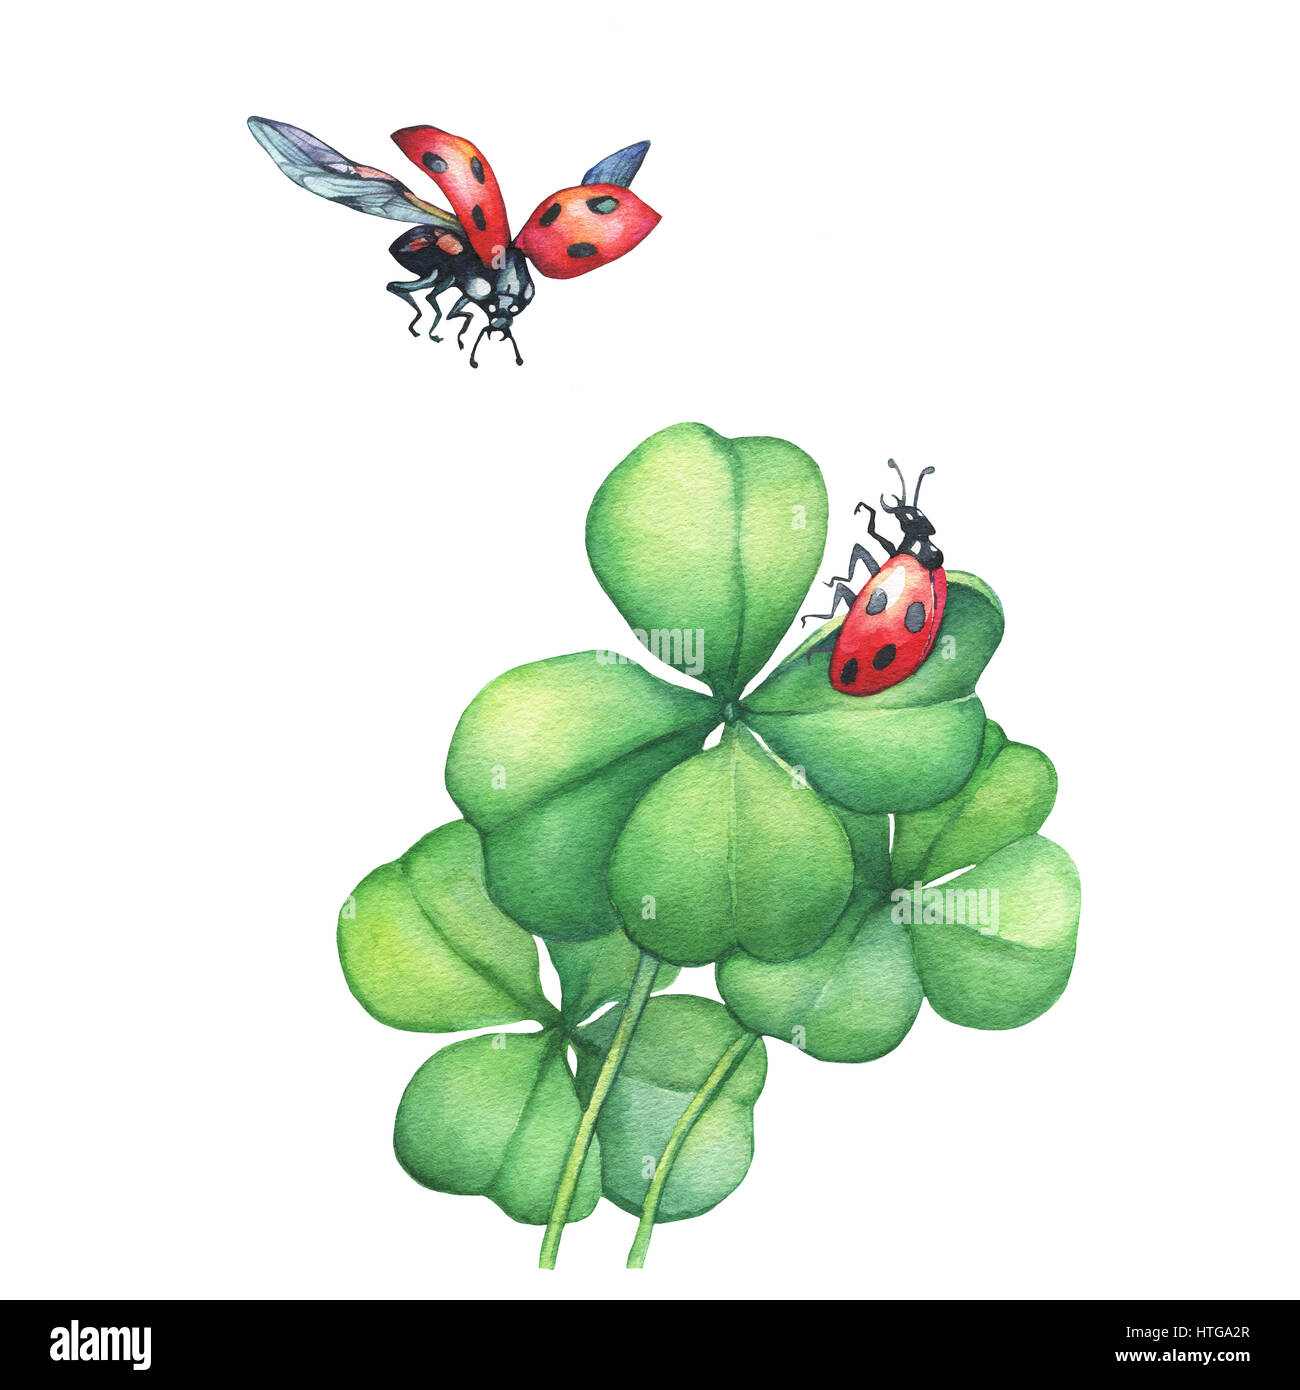 Ladybug in flight and sitting on a green four leaf clover. Hand drawn watercolor painting on white background. - Stock Image